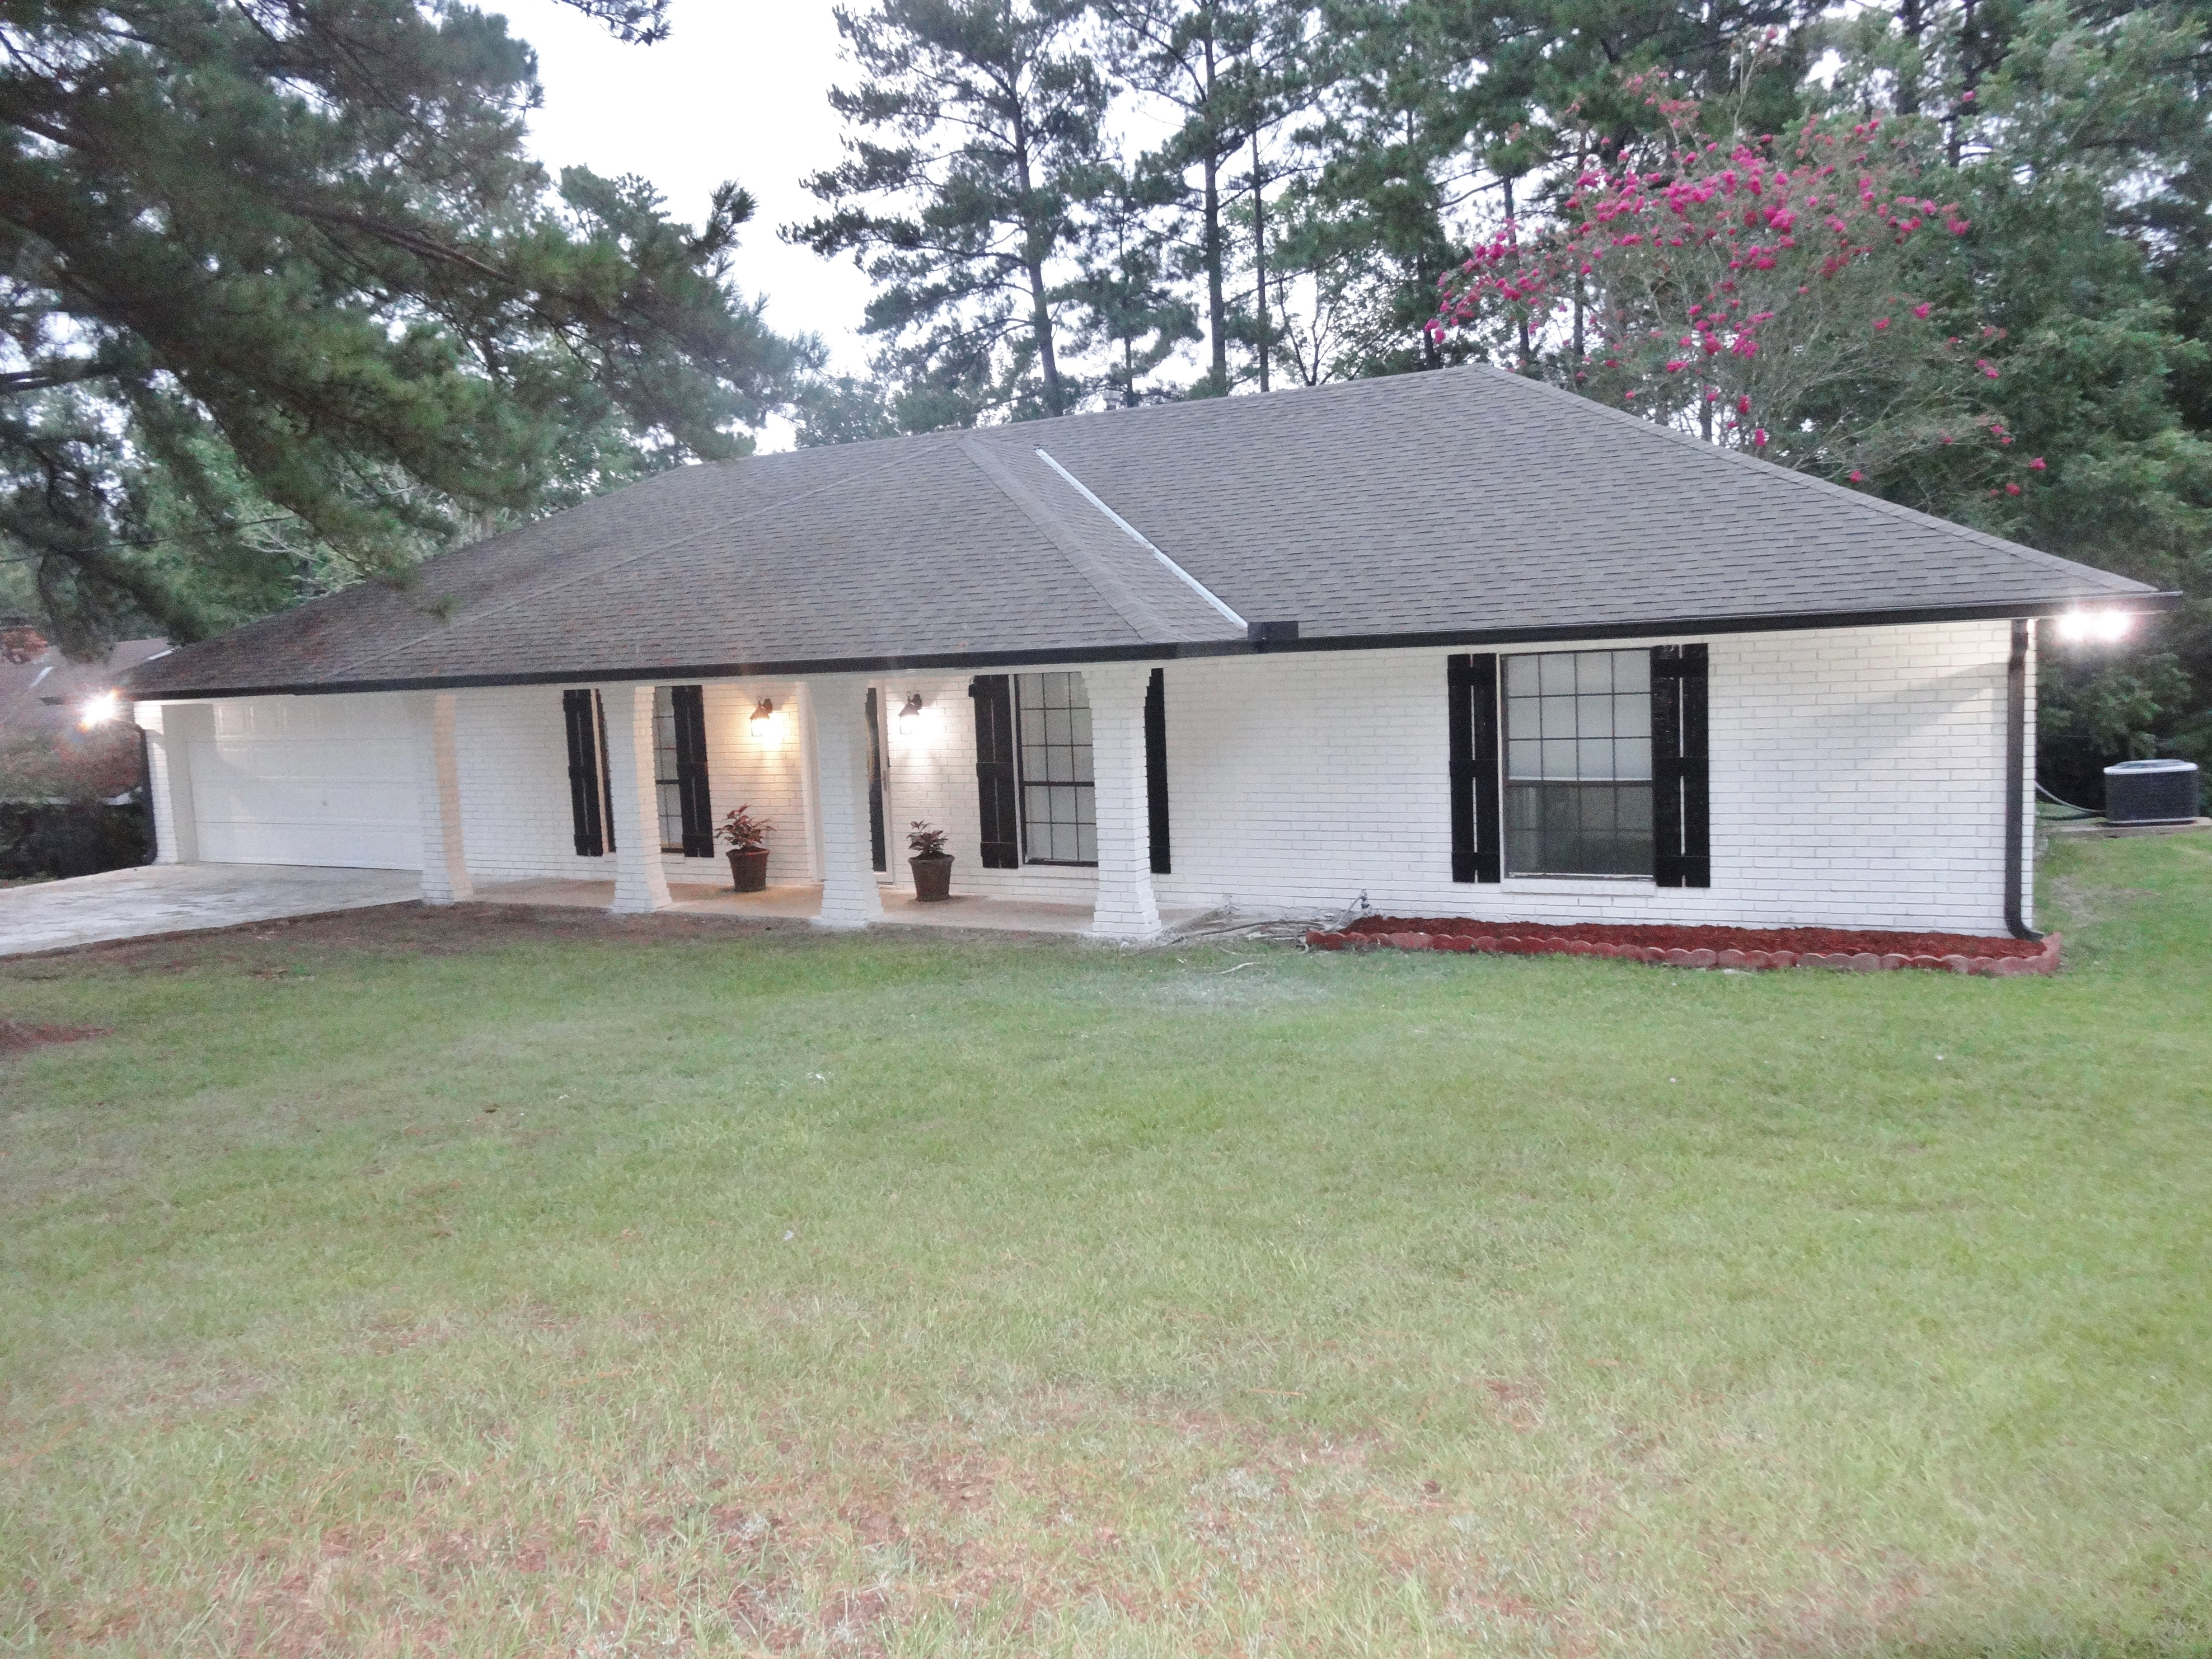 3 Bedroom Home For Sale In Pineville La Price Reduced